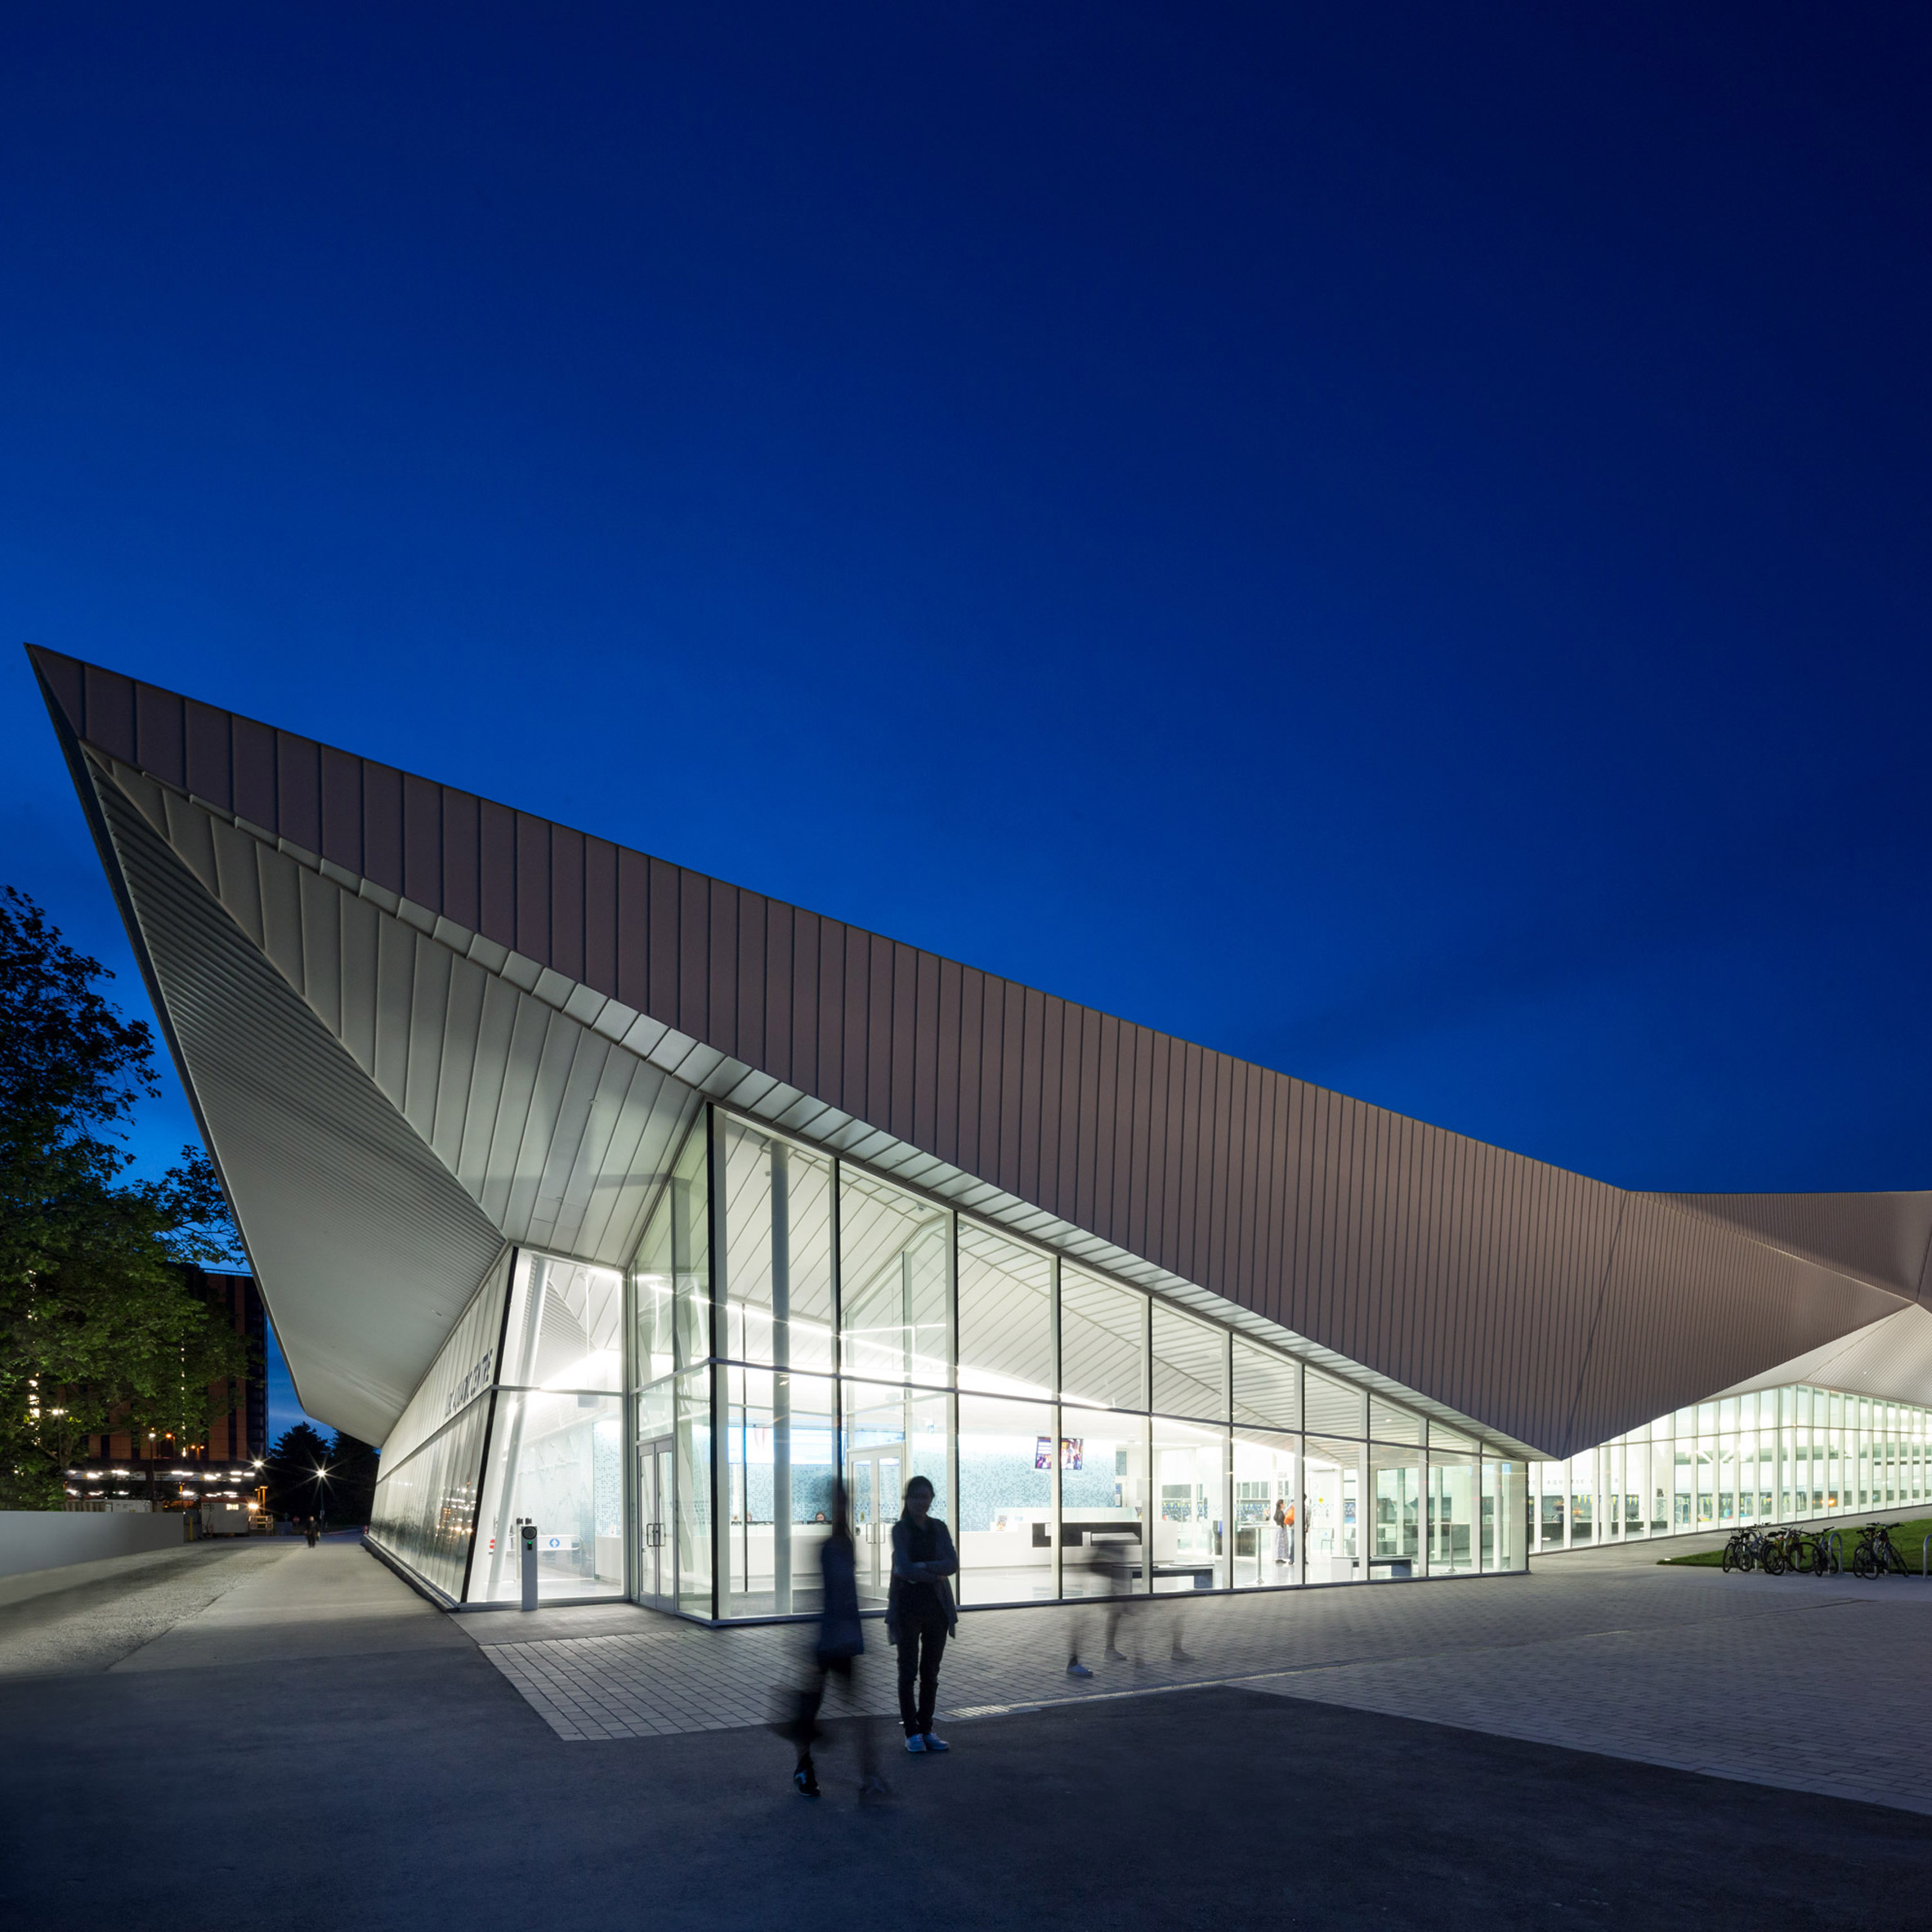 Angular White Roof Covers MJMAu0027s Glazed Aquatic Centre In Vancouver